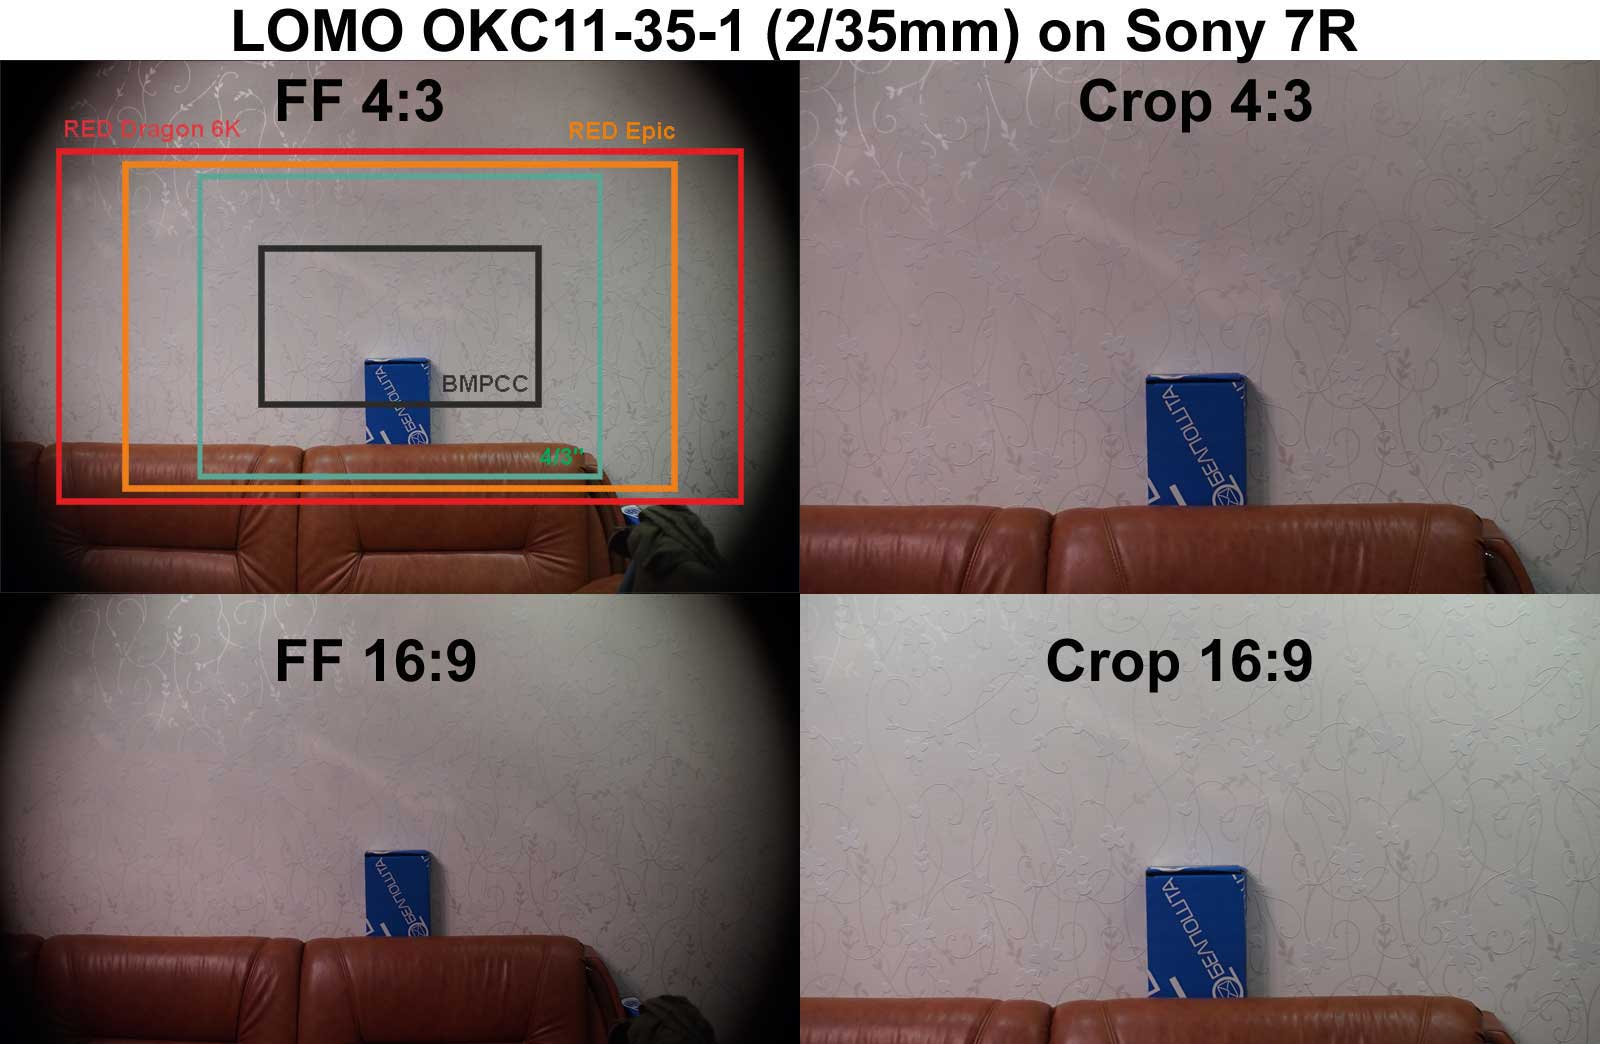 Coverage of LOMO OKC11-35-1 lens on Sony 7R camera